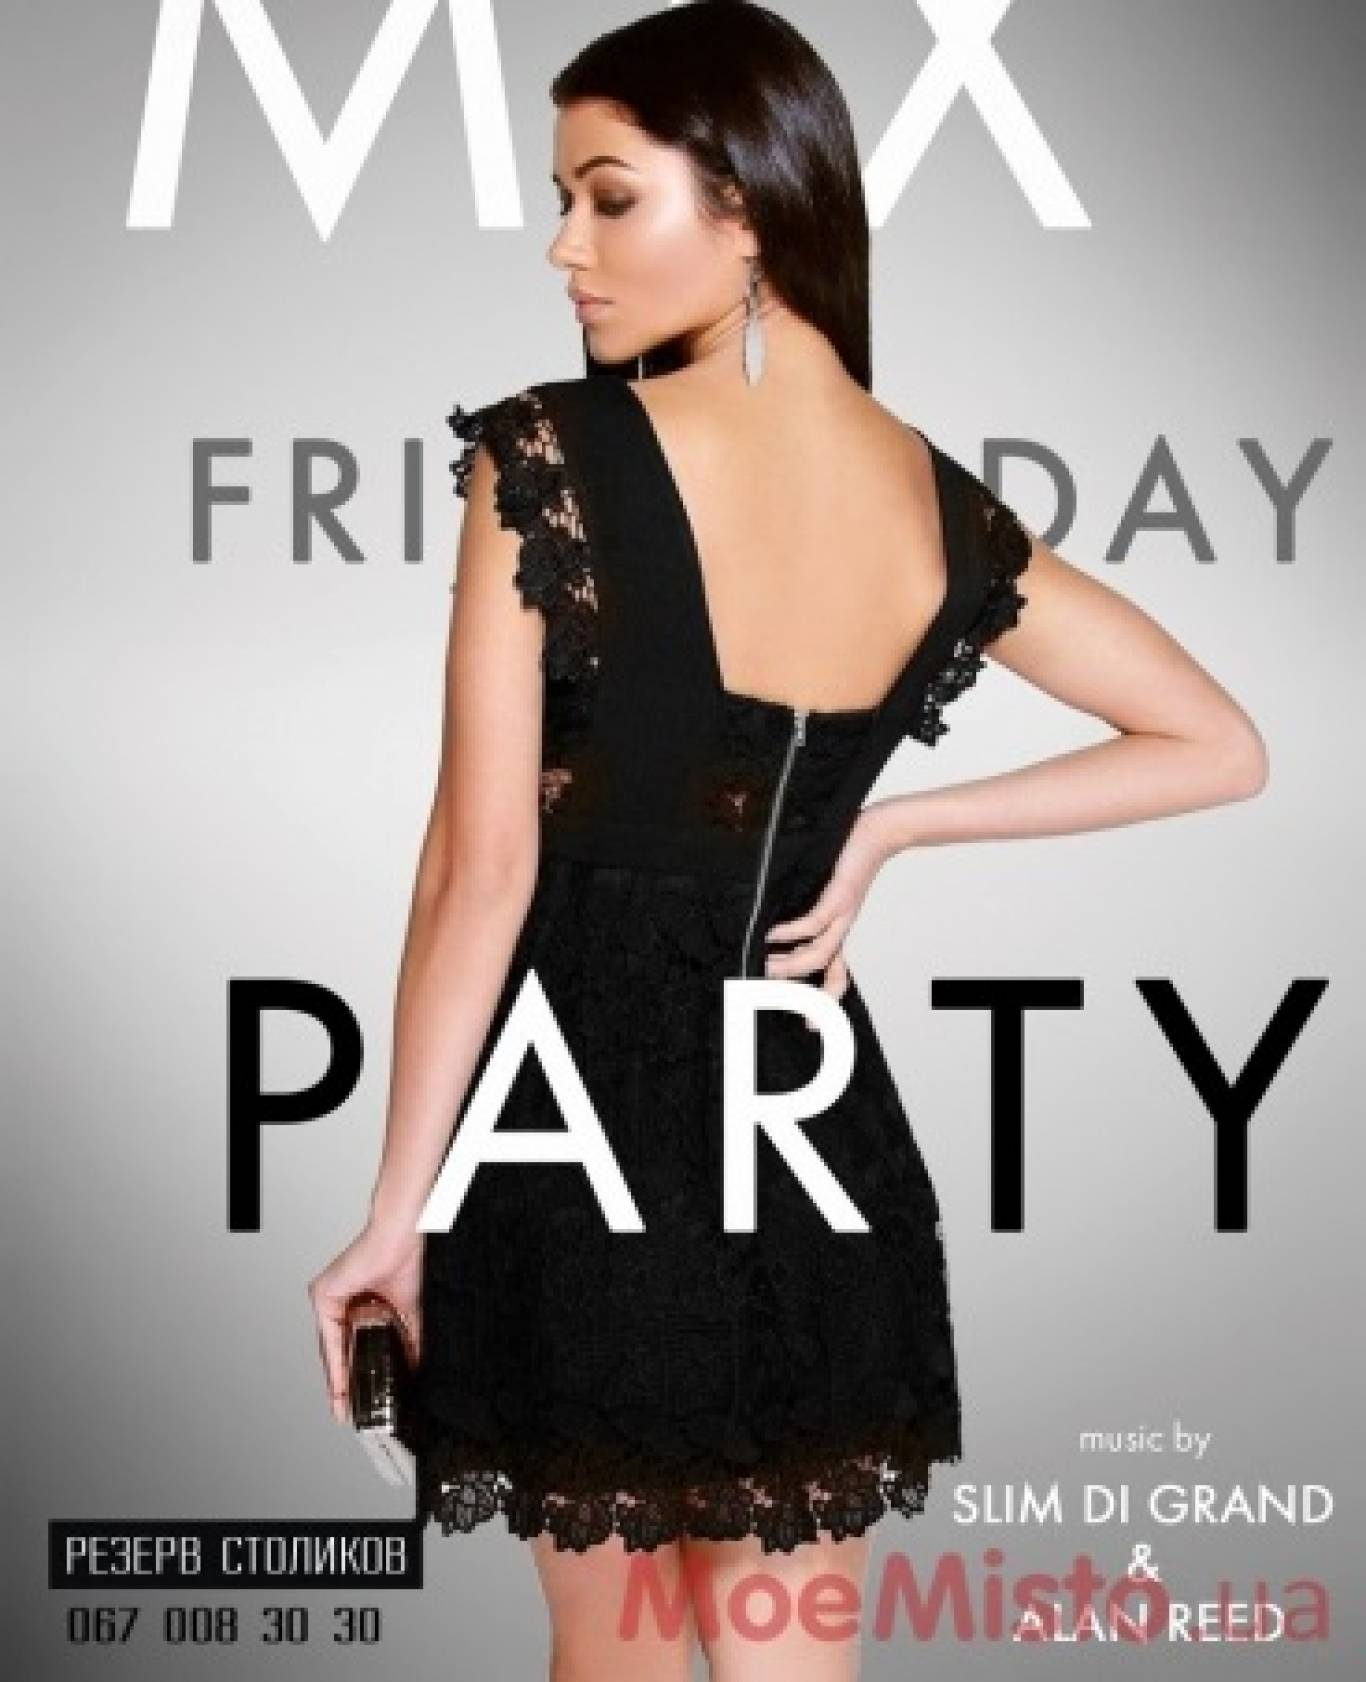 Friday mix party